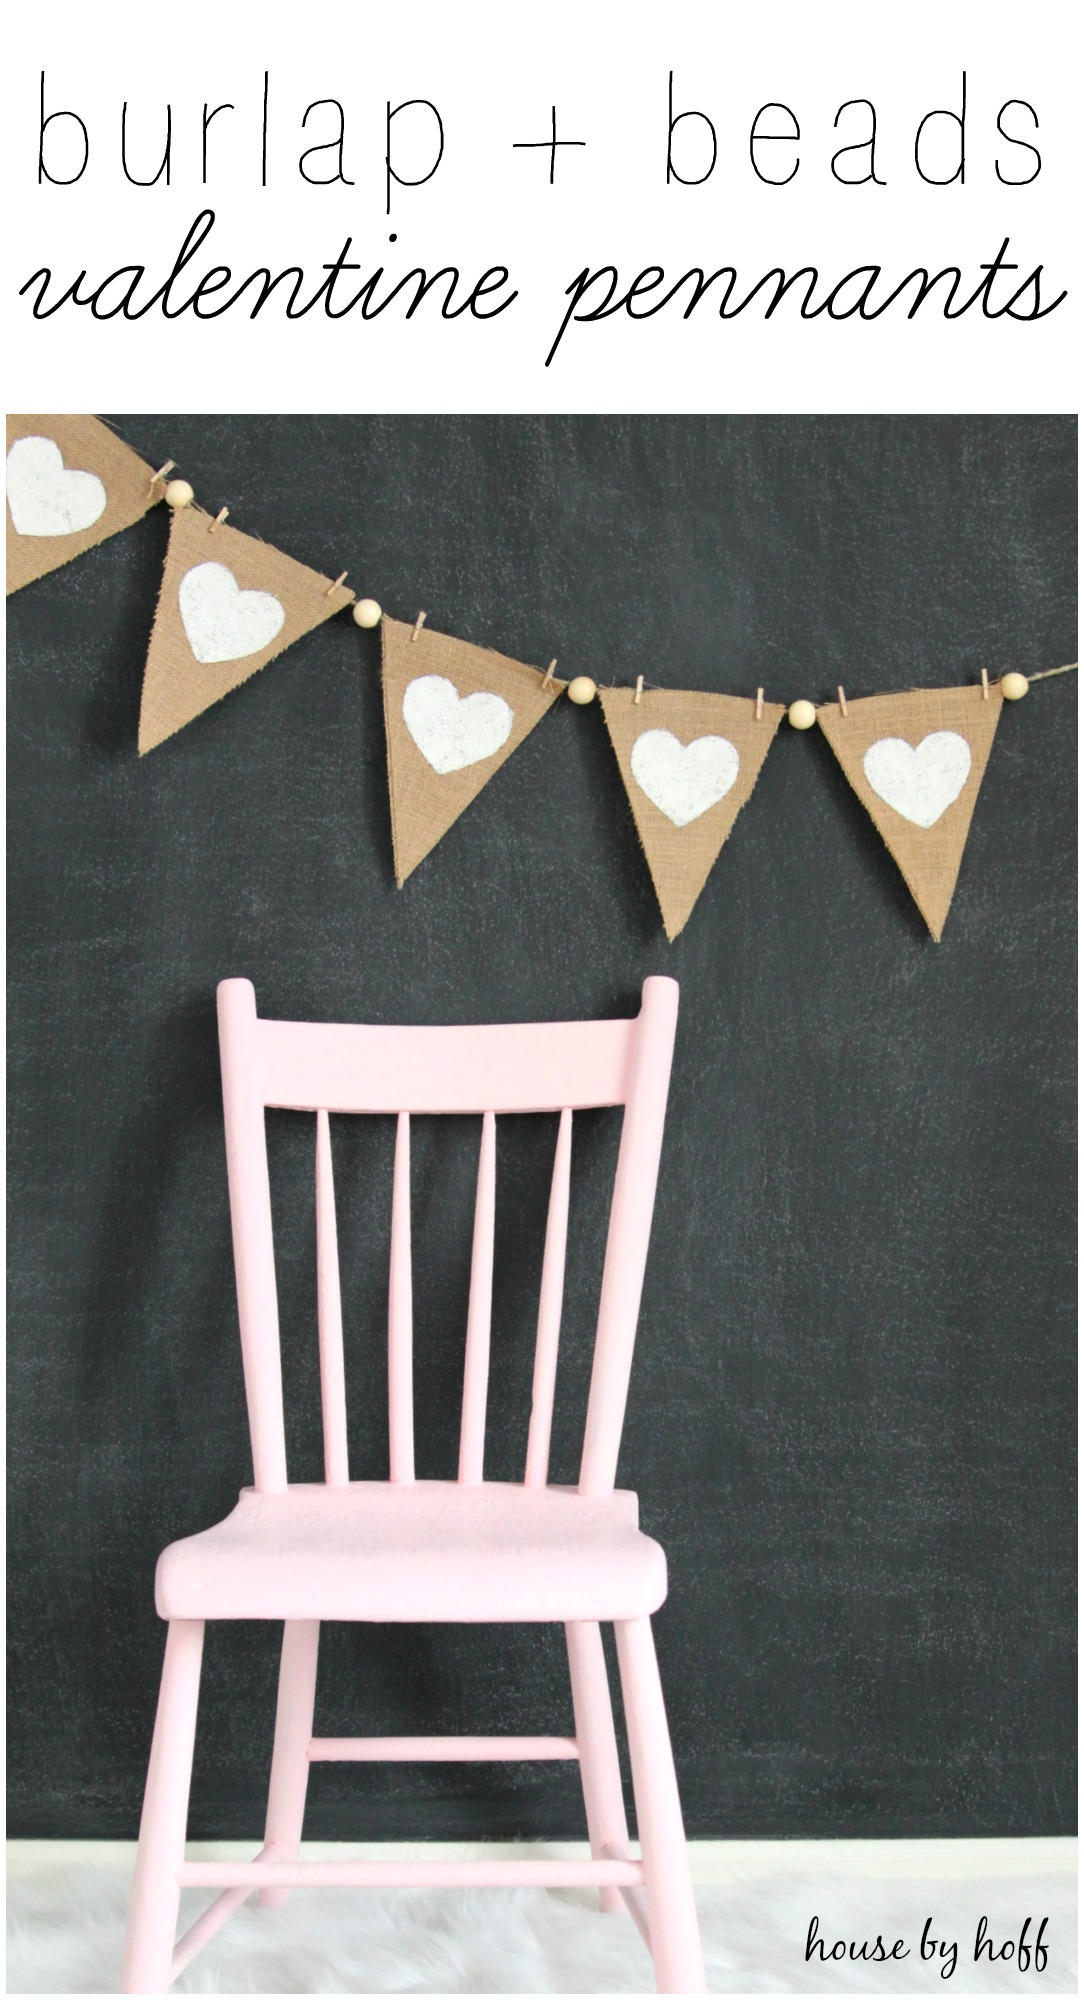 Burlap and Beads Valentine Pennants